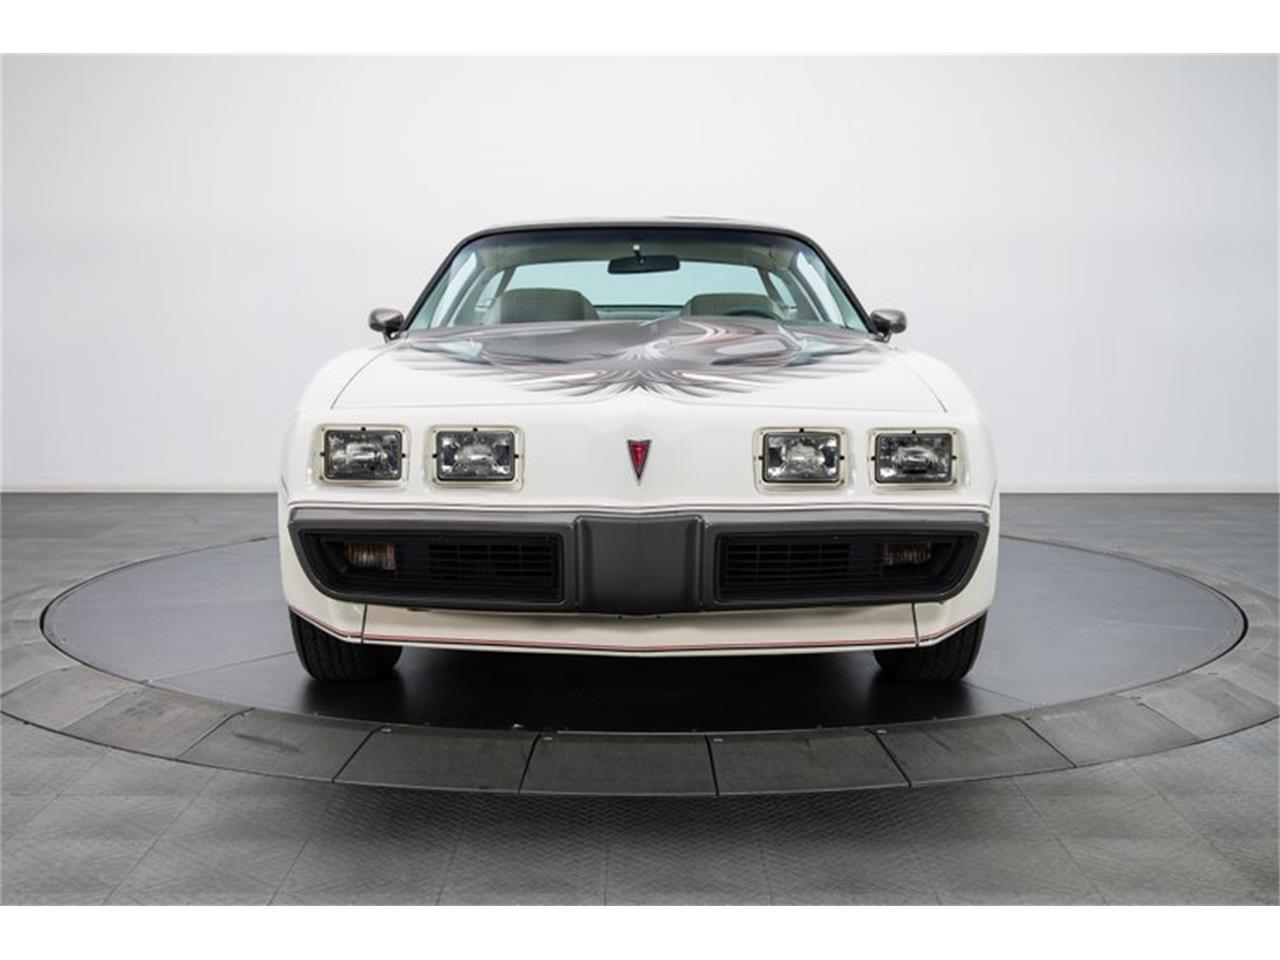 1980 Pontiac Firebird Trans Am Turbo Indy Pace Car Edition for sale in Charlotte, NC – photo 8